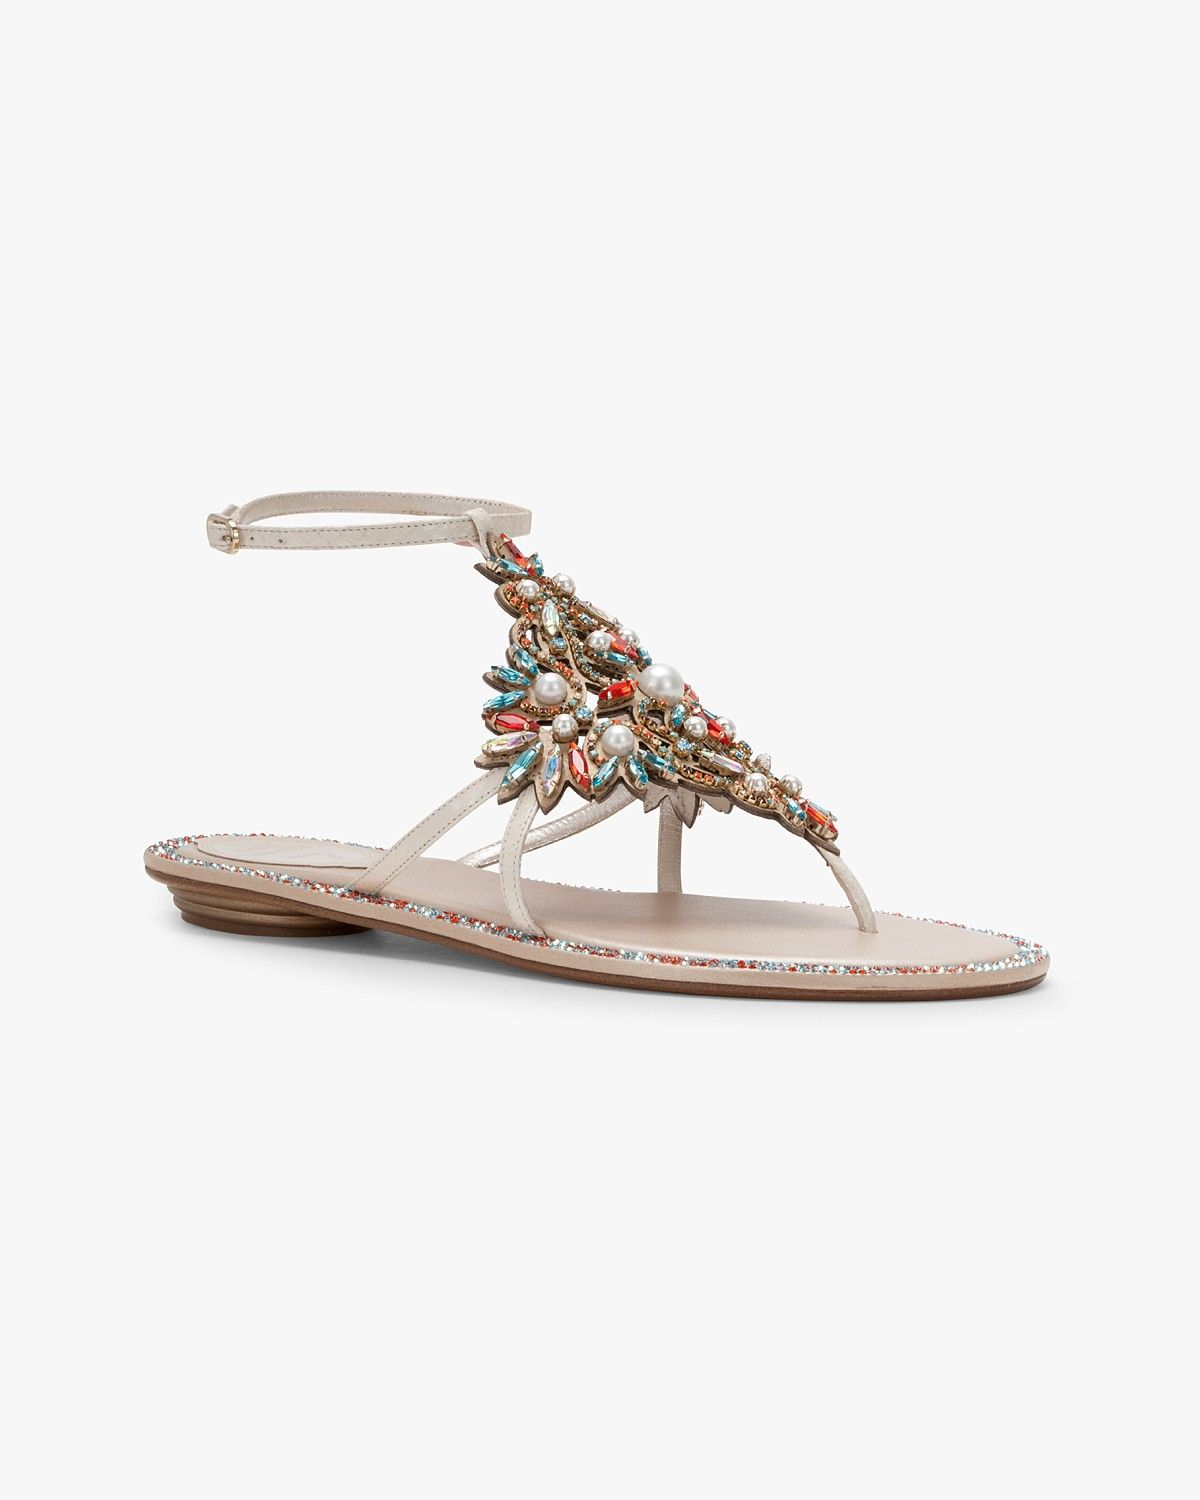 Leather sandal with stones